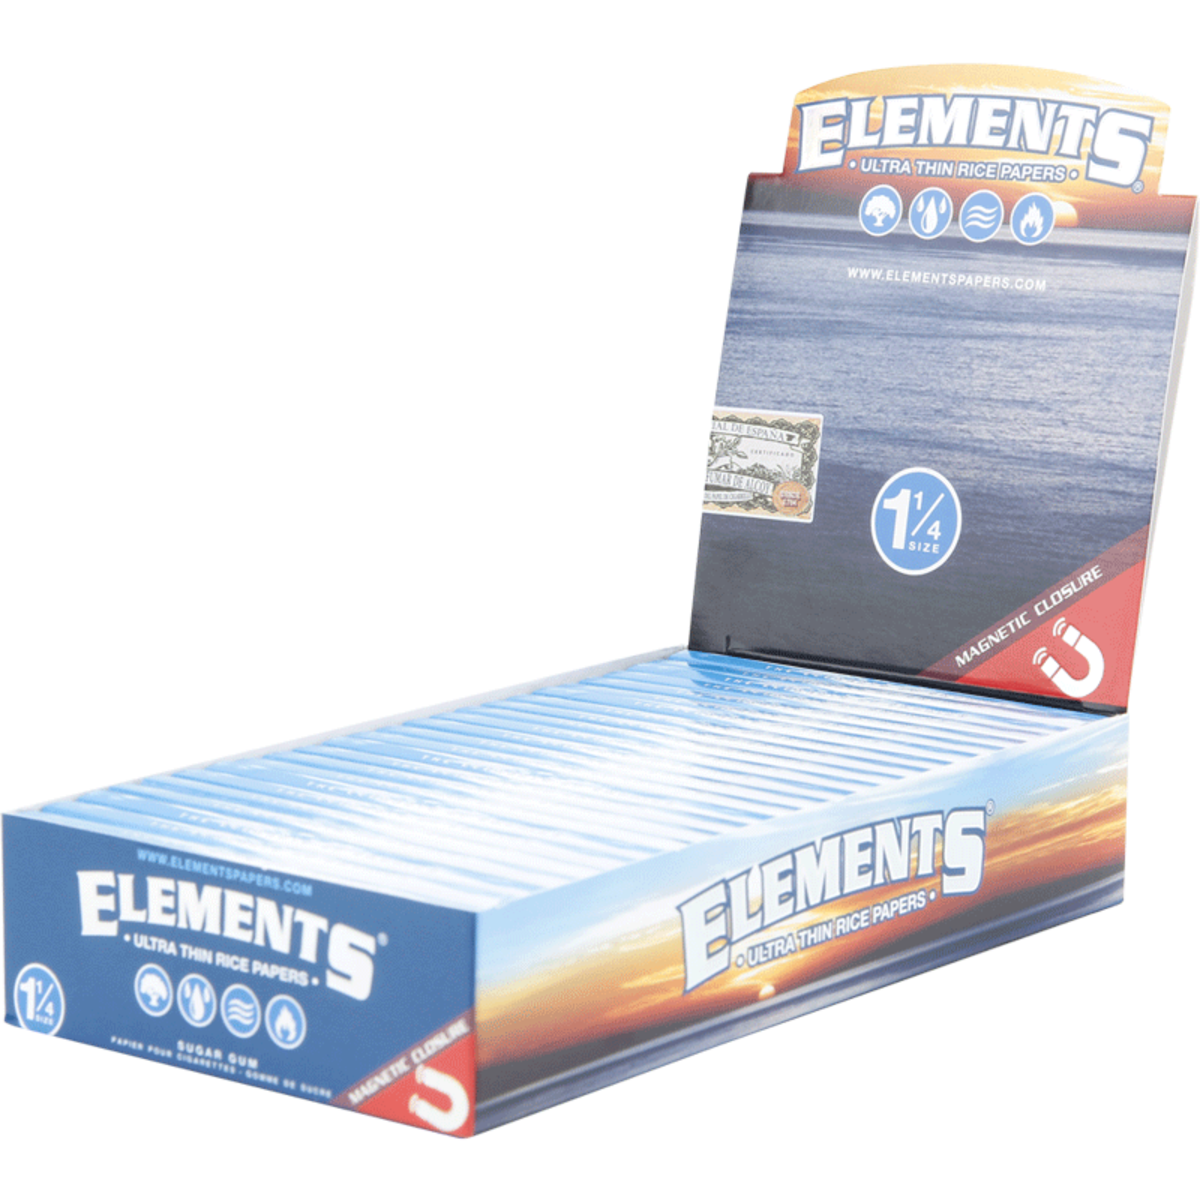 ELEMENTS ULTRA THIN RICE PAPER 1 1/4 (Box Of 25) - 360 Alternative